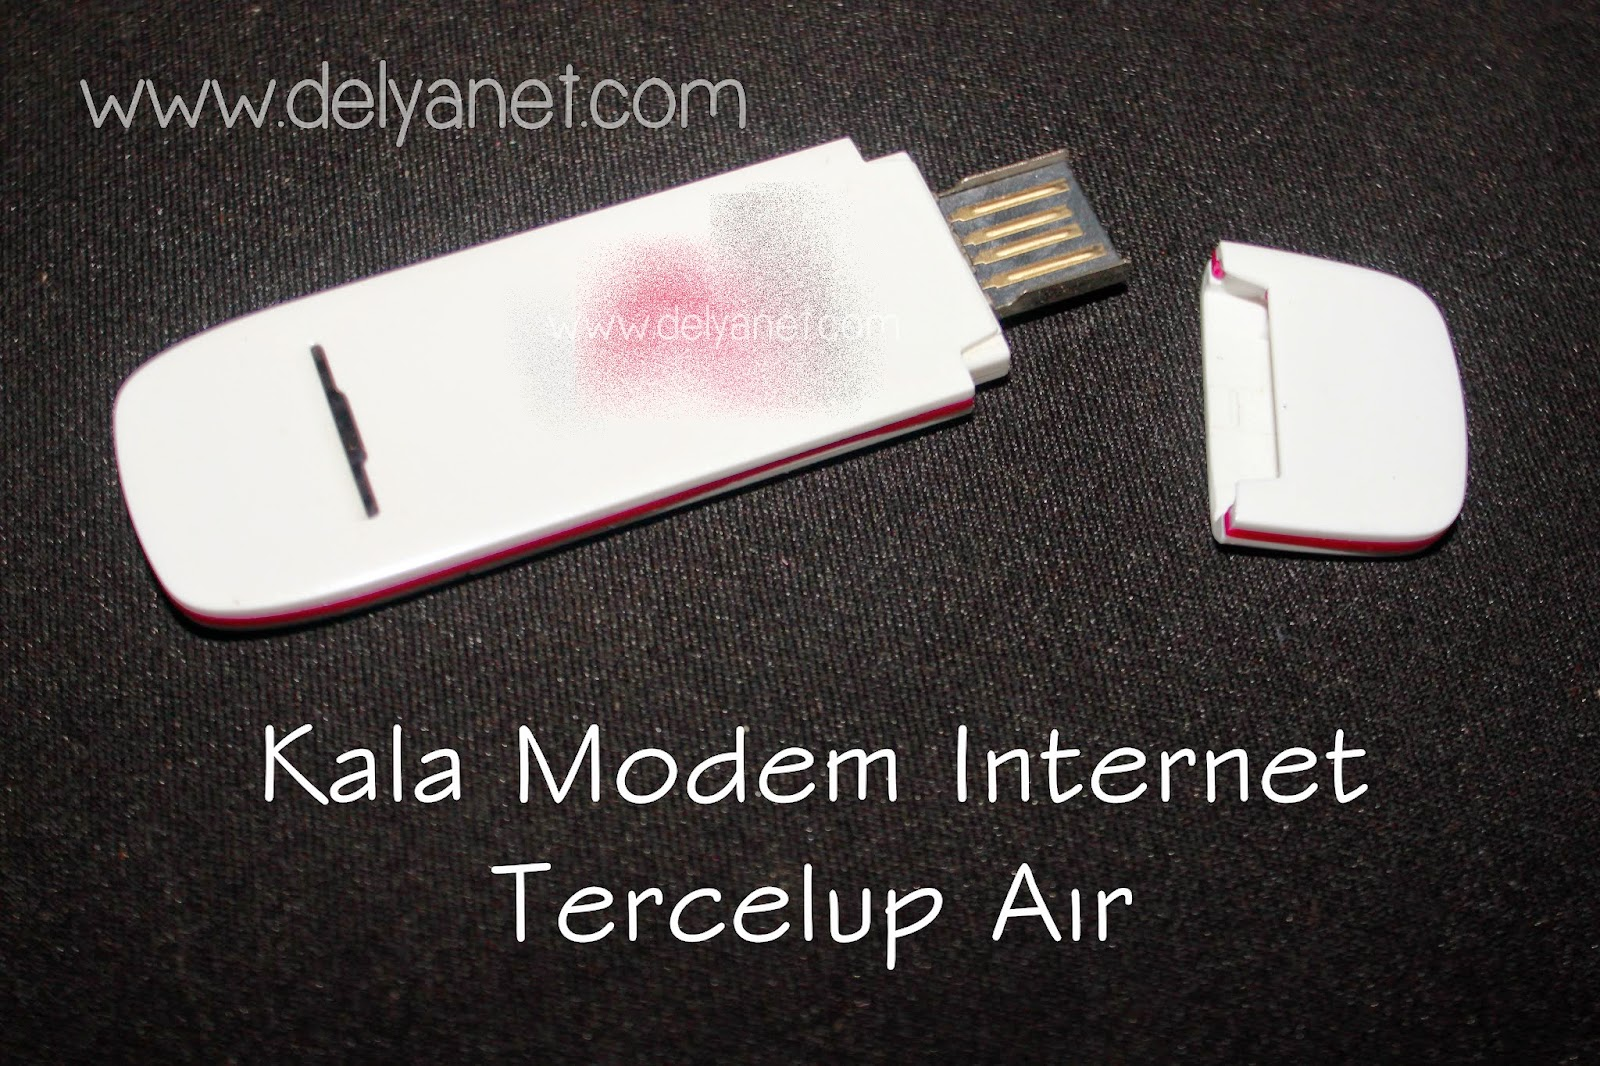 Kala Modem Internet Tercelup Air